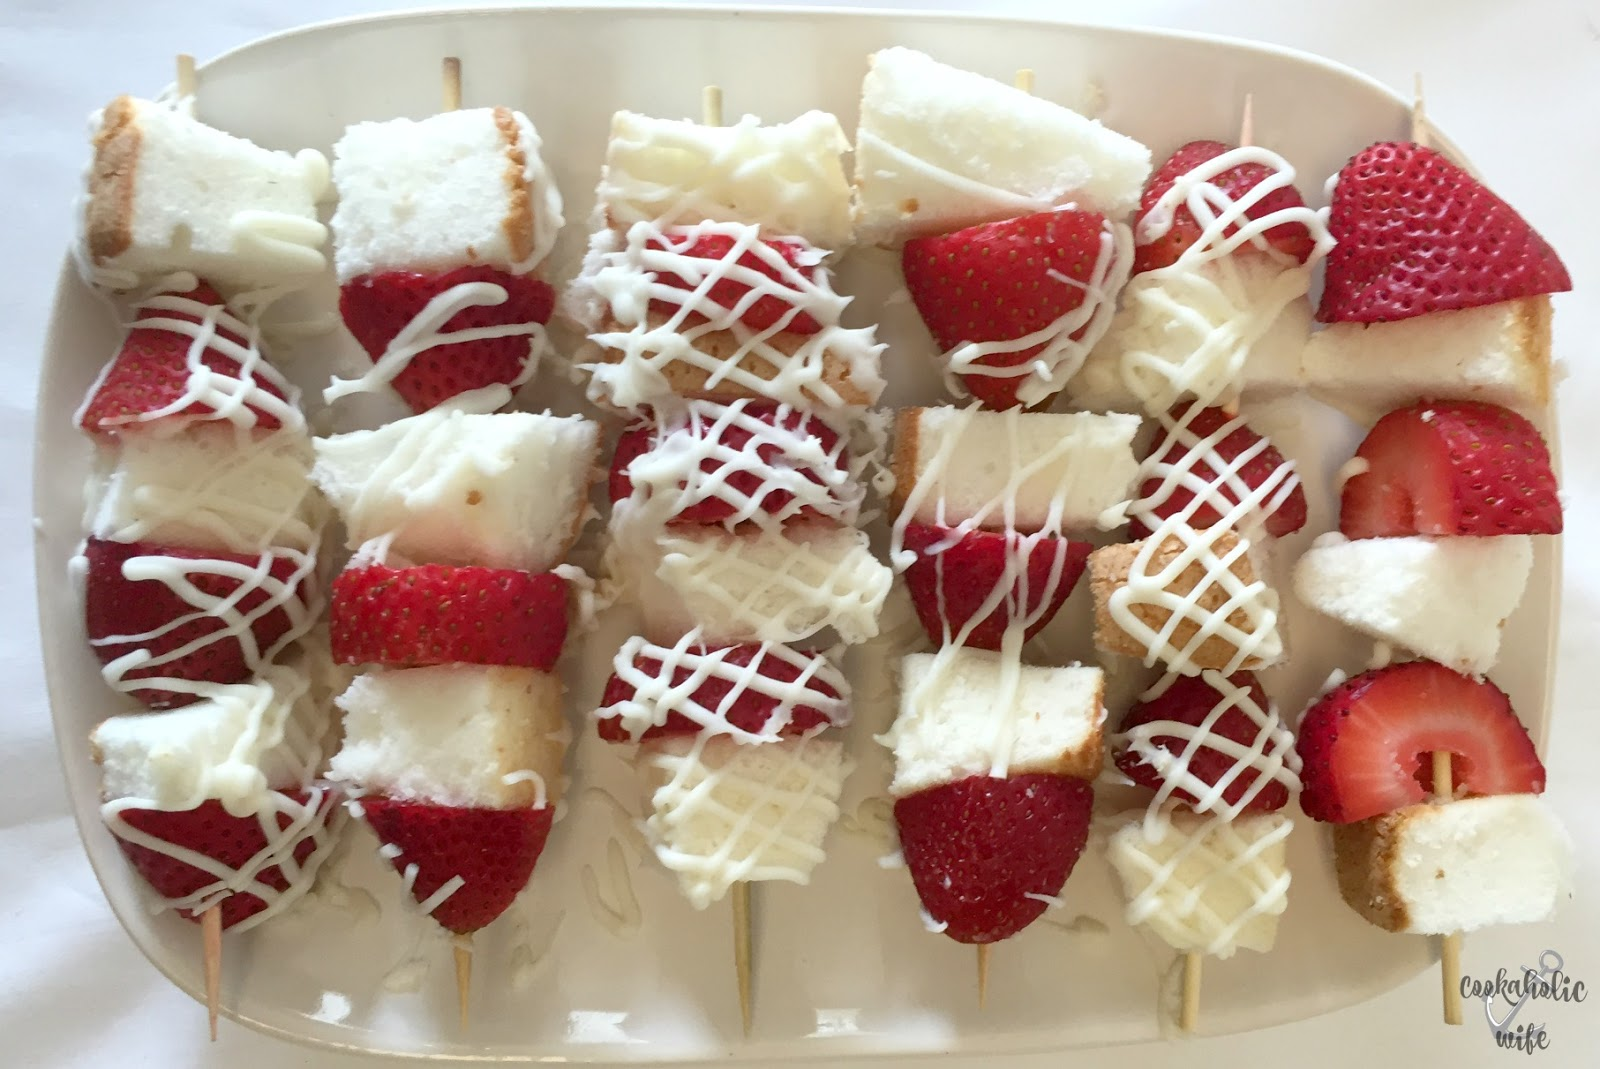 Cookaholic wife strawberry angel food cake kebabs ive never been a huge fan of cake preferring the ice cream variety for birthdays because i find the traditional stuff to be too dense forumfinder Image collections